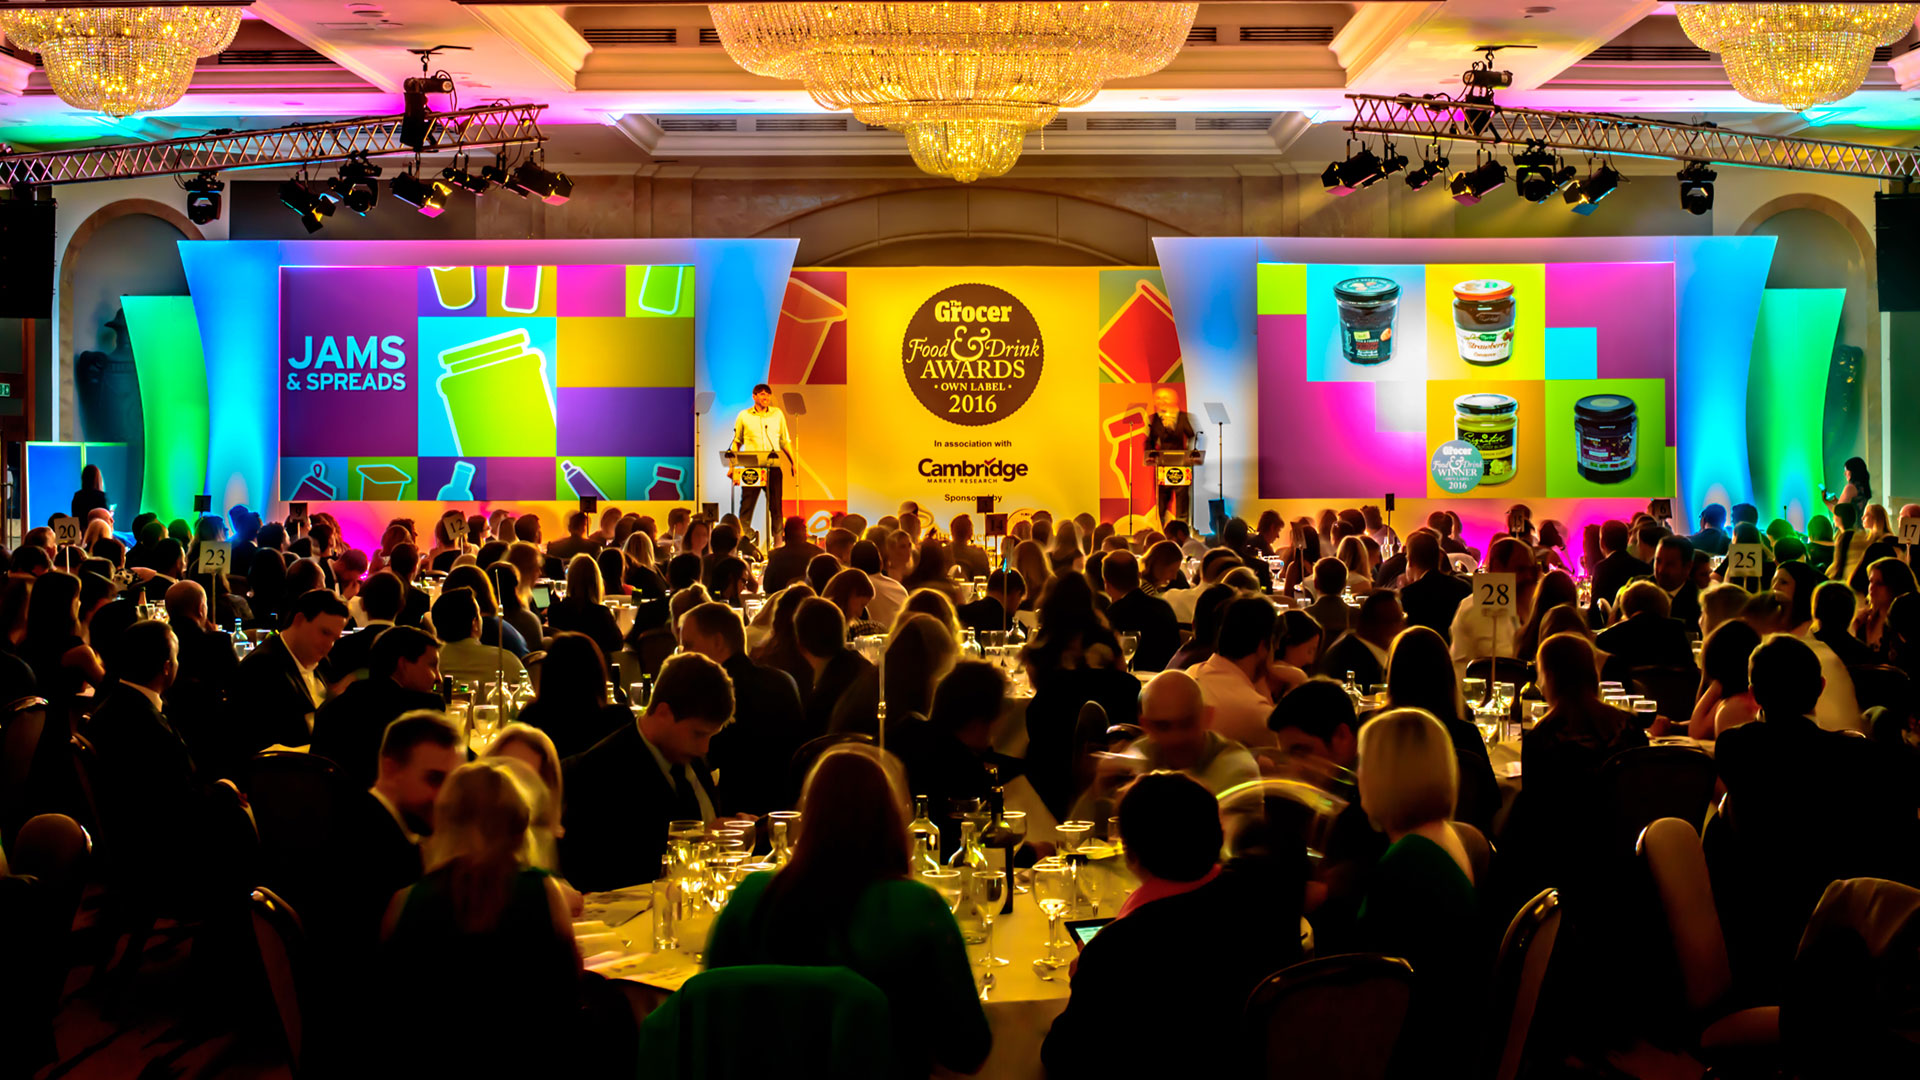 The Grocer Own Label Food & Drink Awards Event